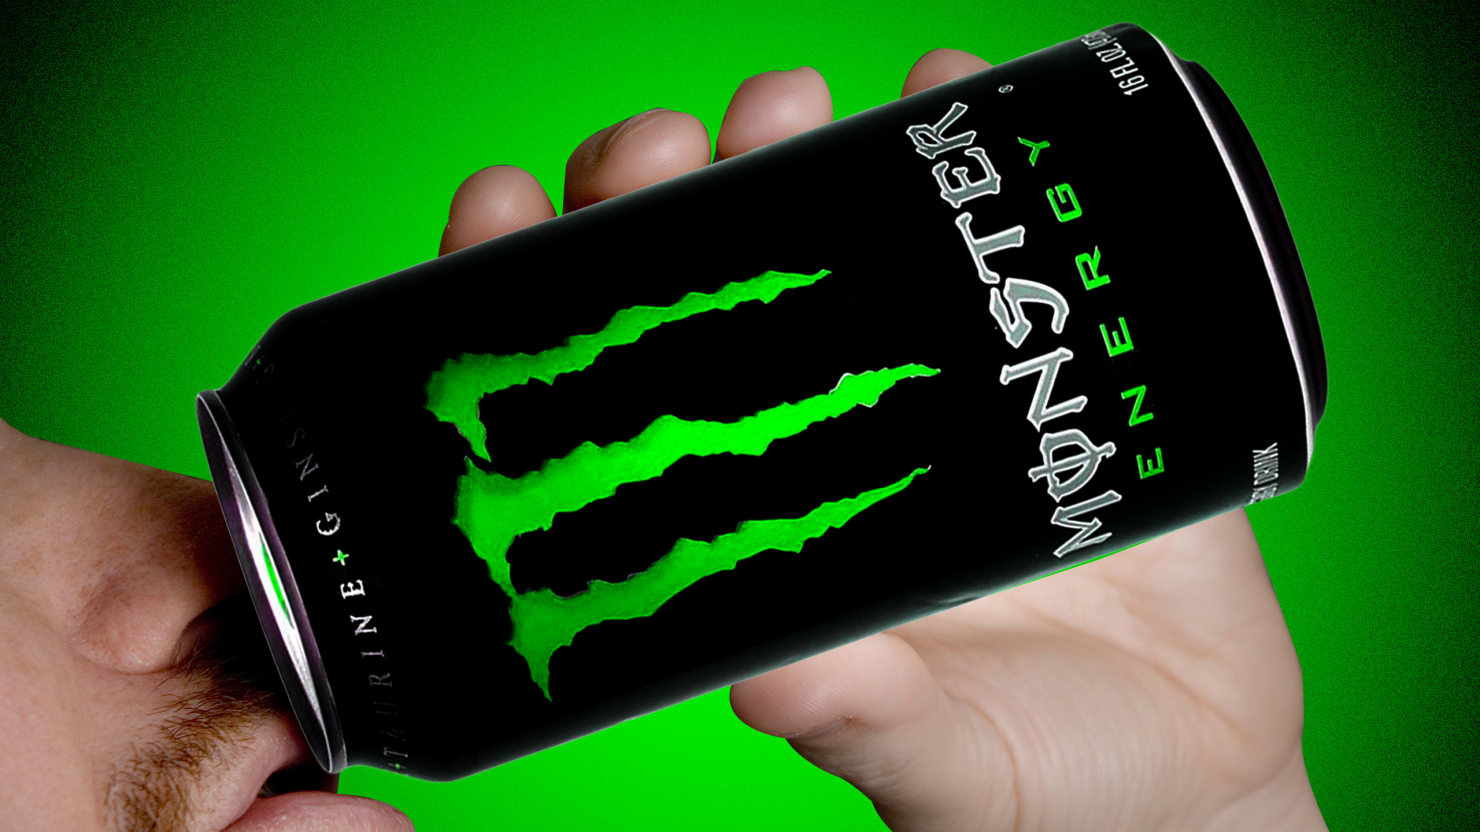 Monster Energy Drink Almost Killed Us, Lawsuits Claim